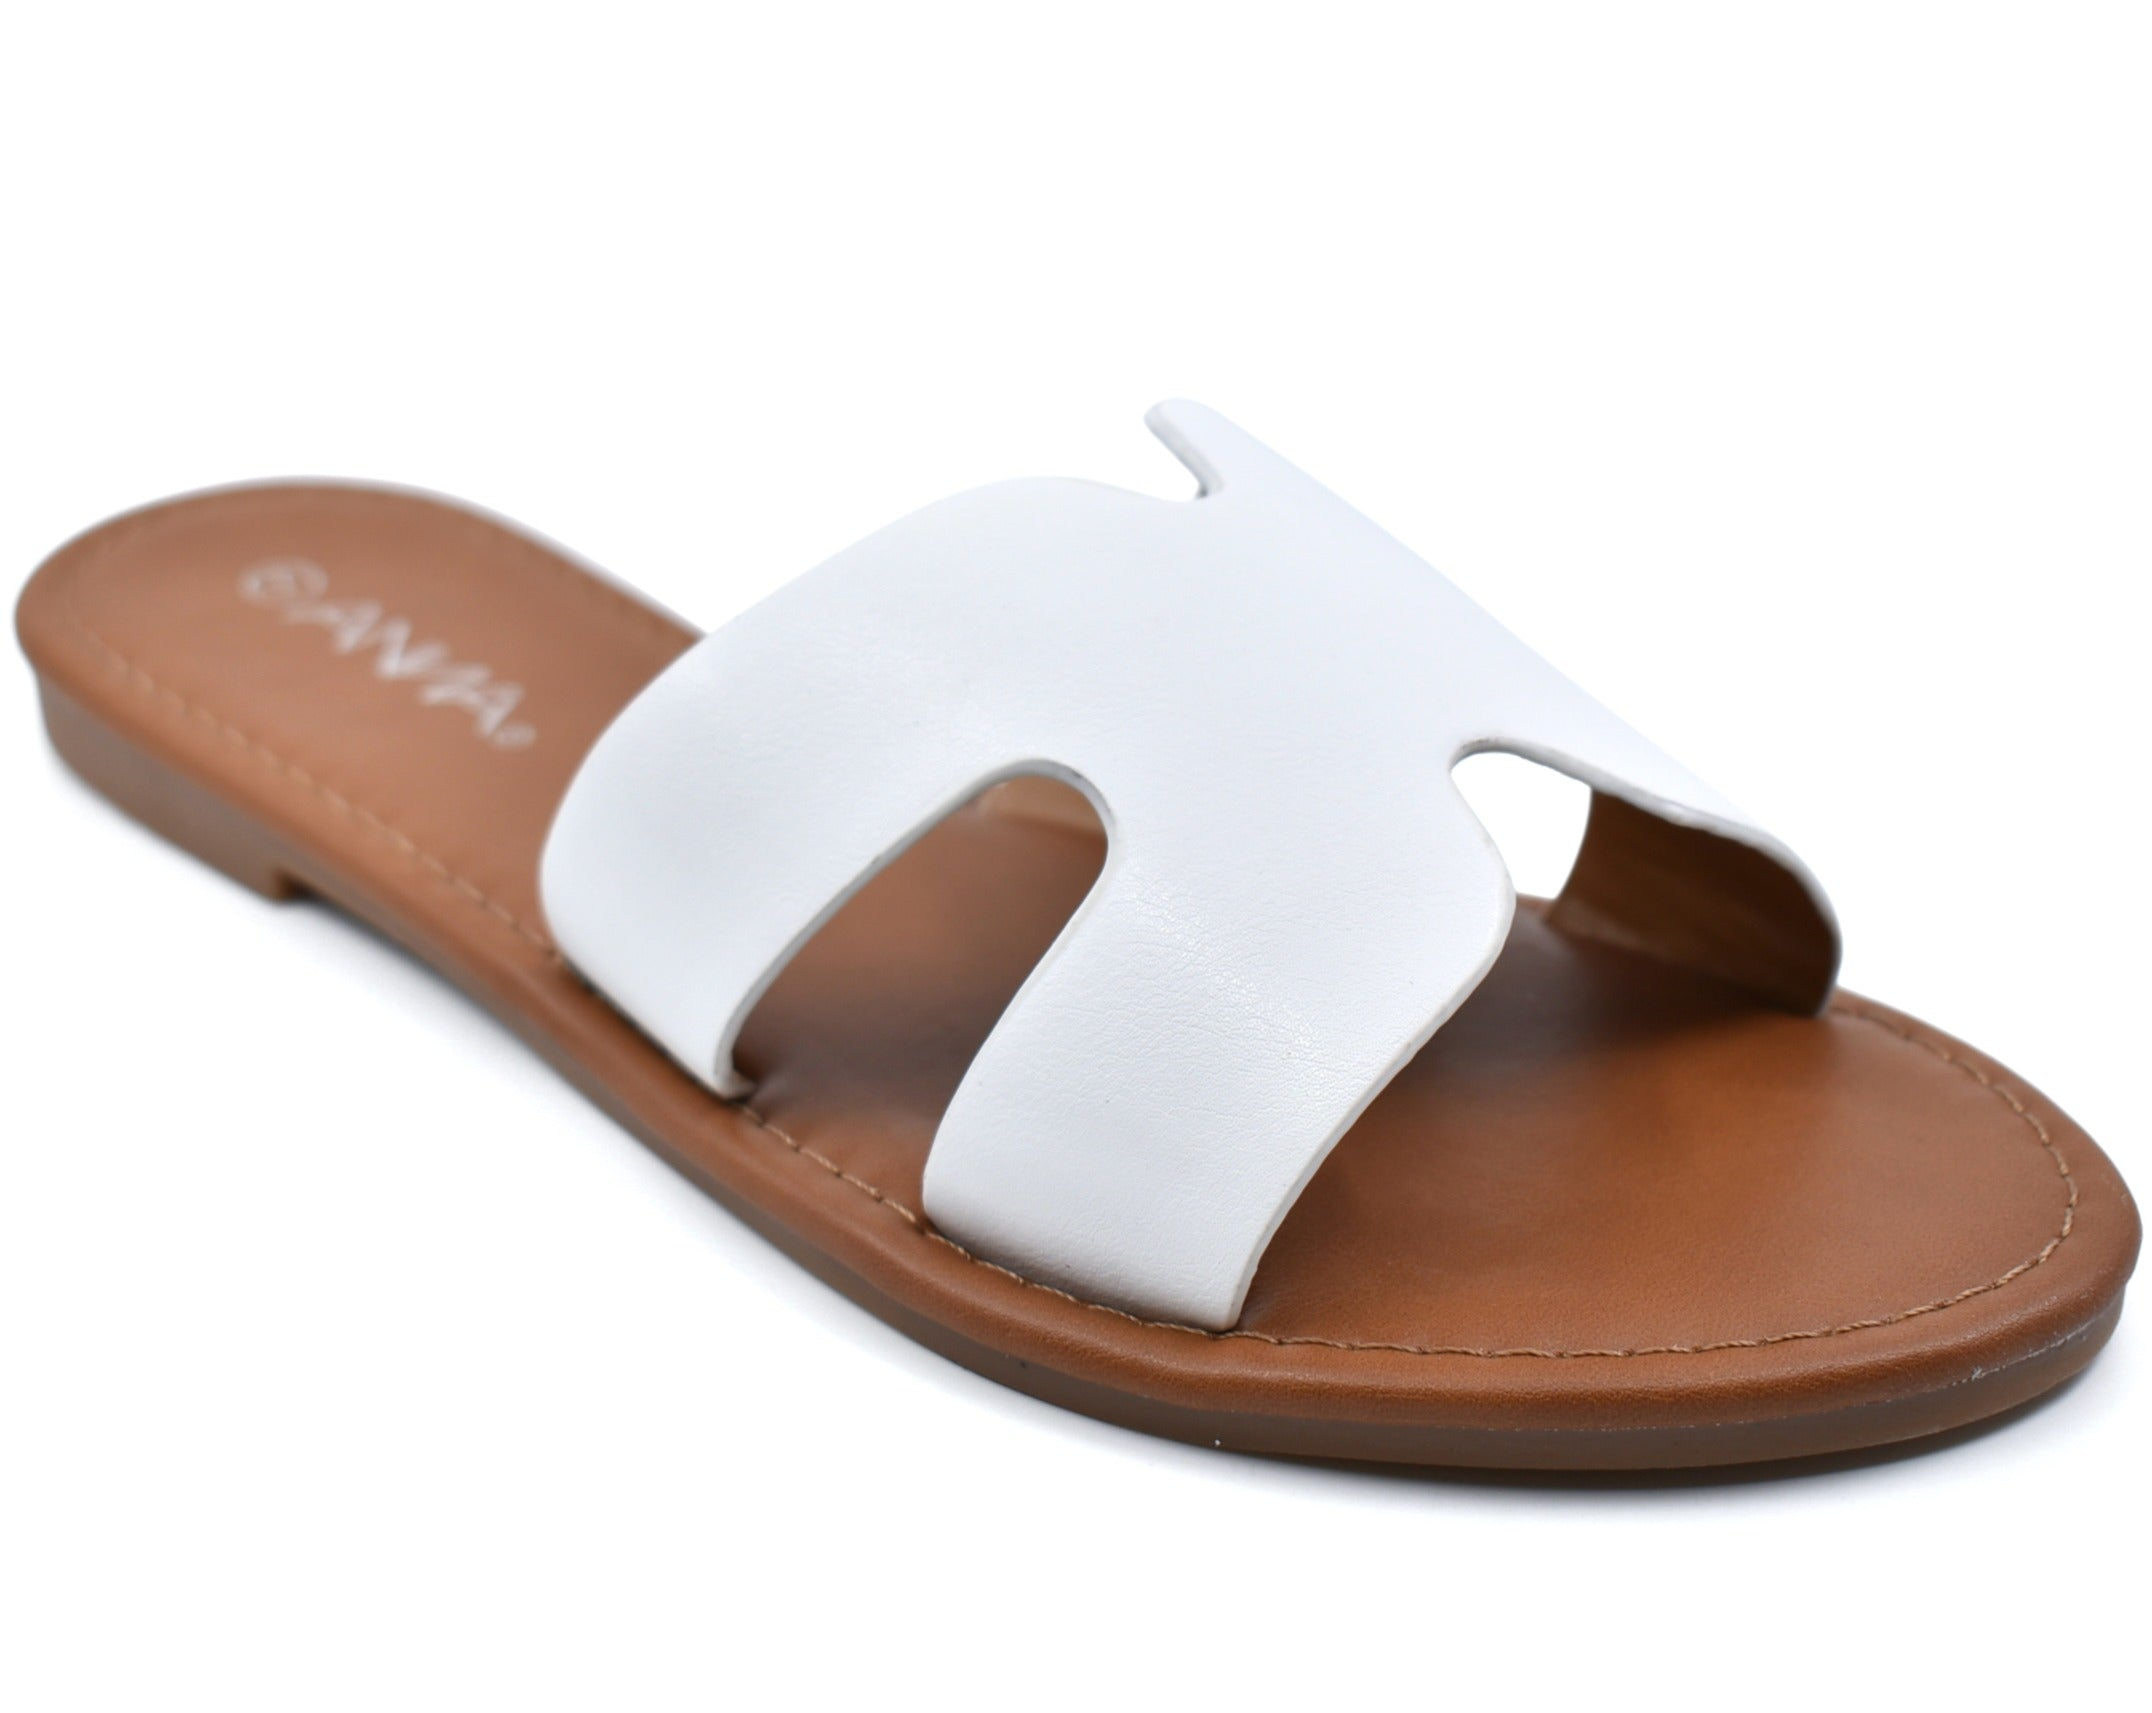 Rise-1 Round Open Toe X H Slide Sandals